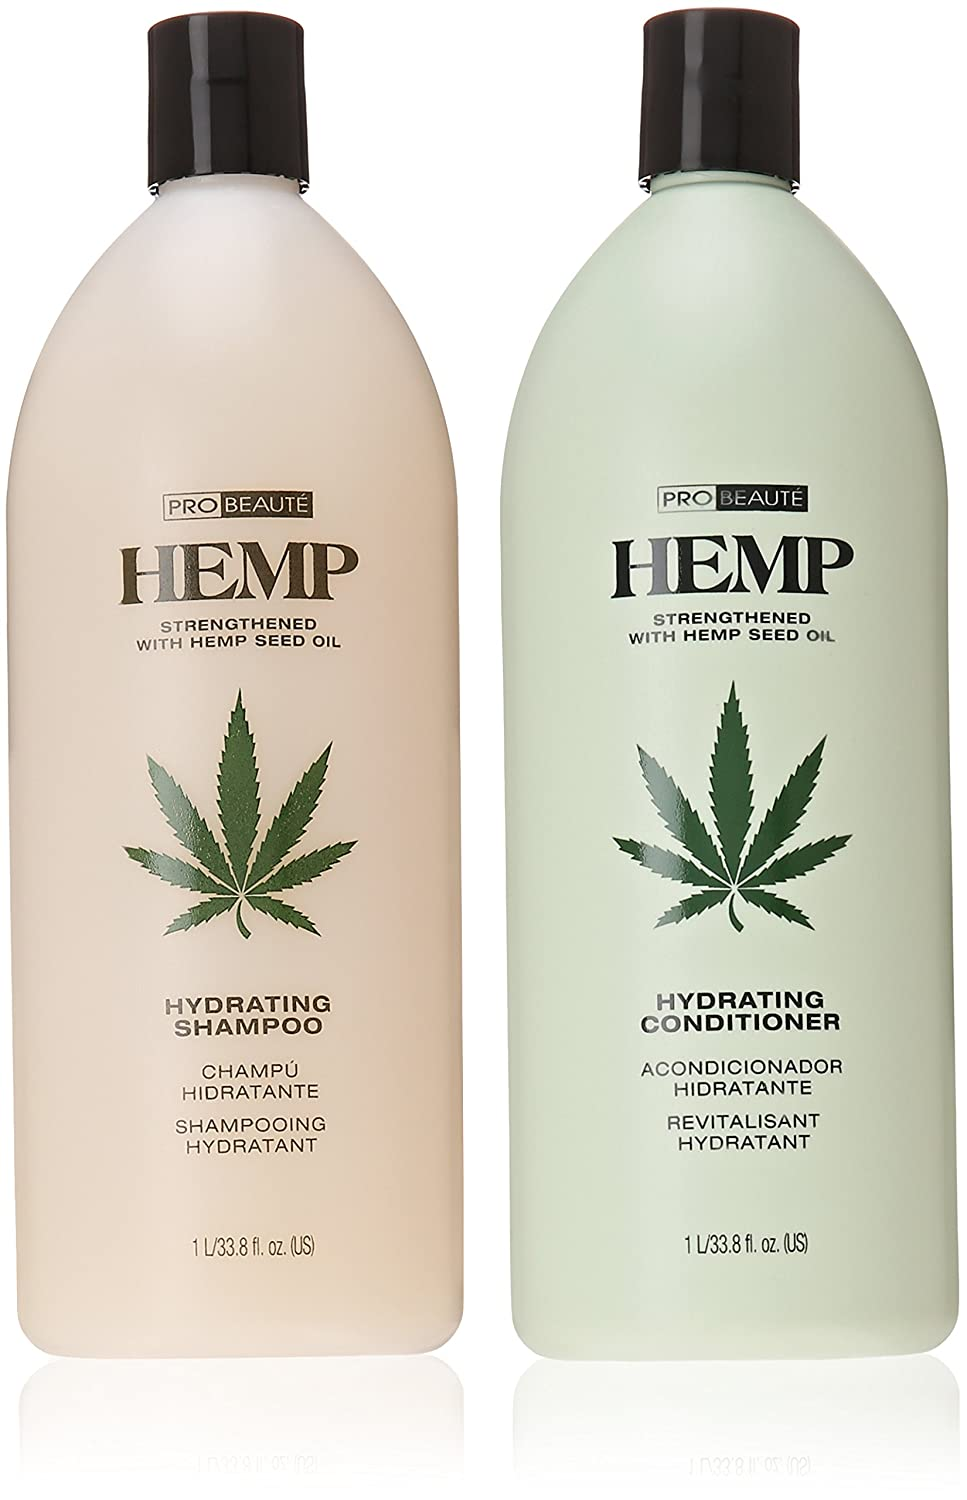 Hydrating Conditioner DUO